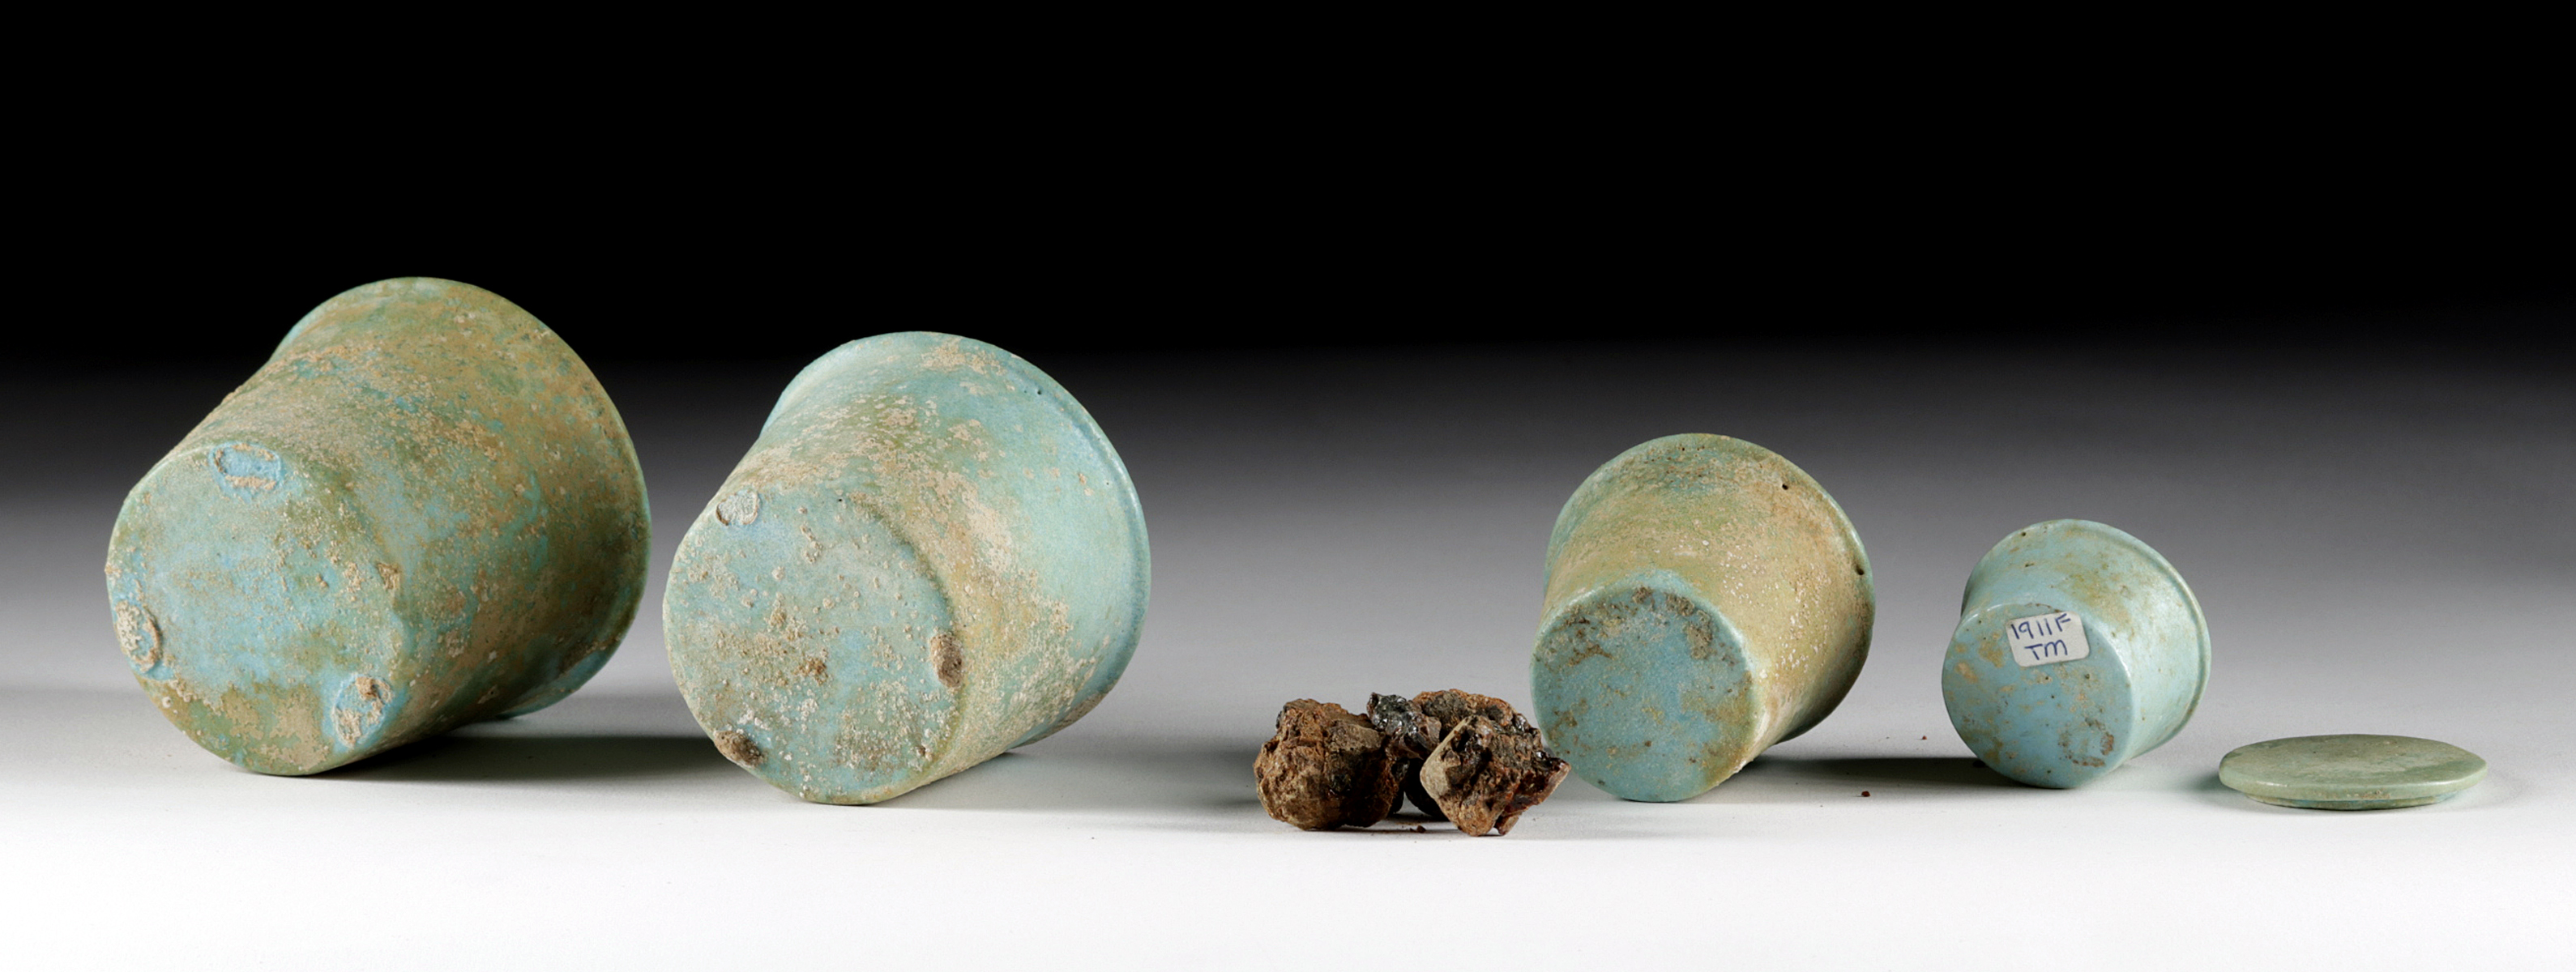 Lot 3b - 4 Egyptian Faience Kohl Jars + Original Kohl